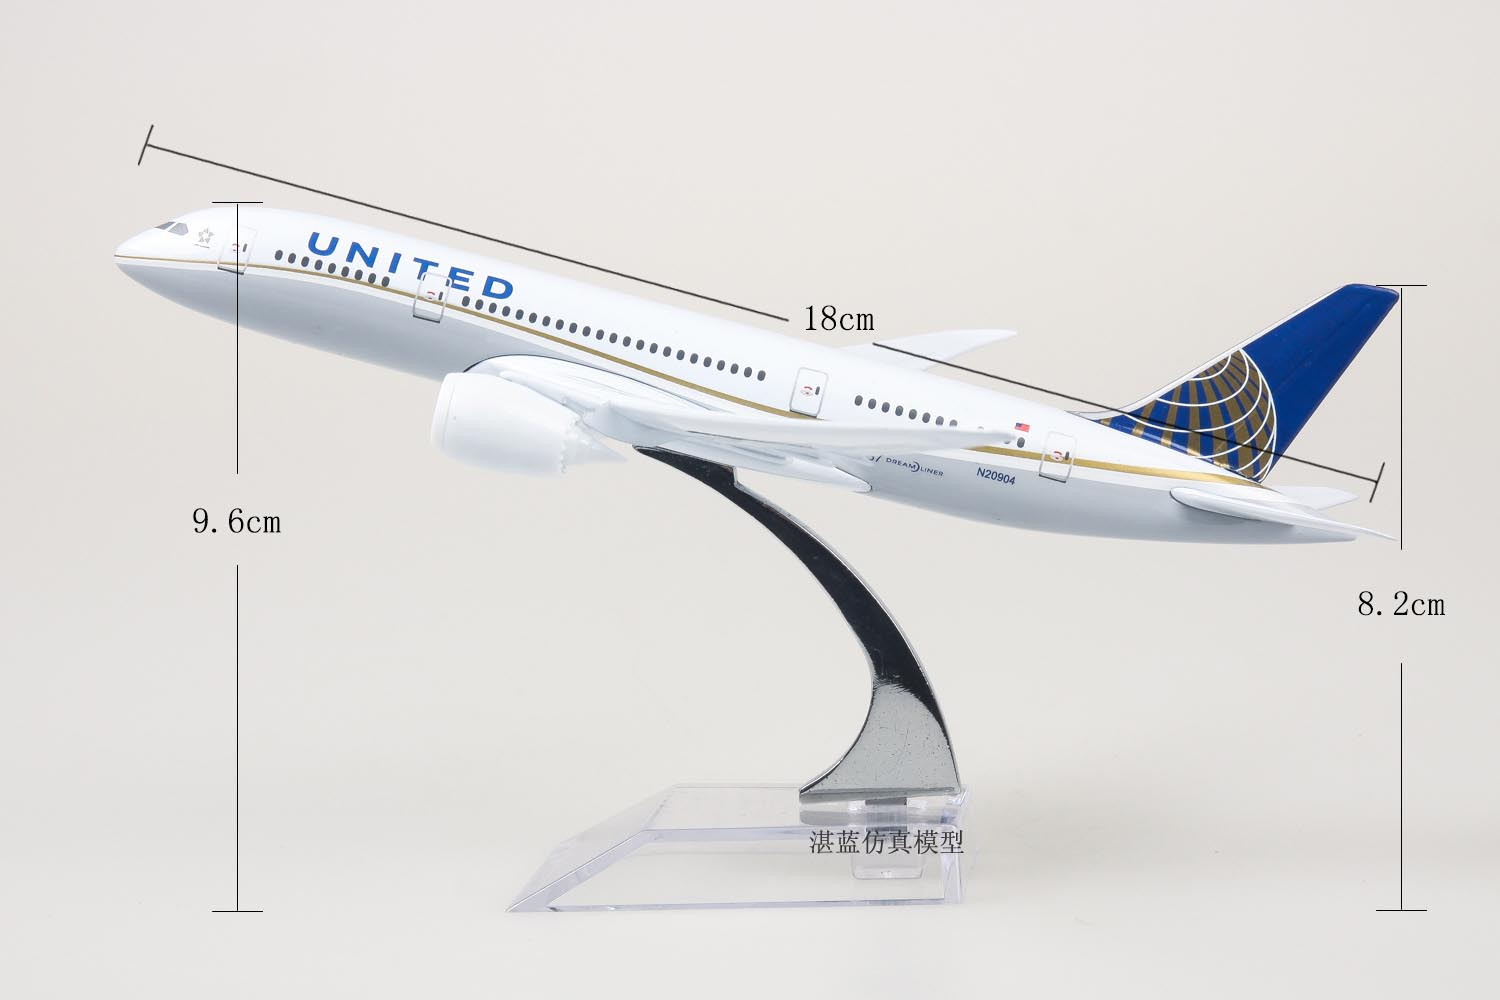 Brand New 1/350 Scale Airplane Model Toys United Airlines Boeing787 (Dreamliner) Airliner Diecast Metal Plane Model Toy For Gift(China (Mainland))